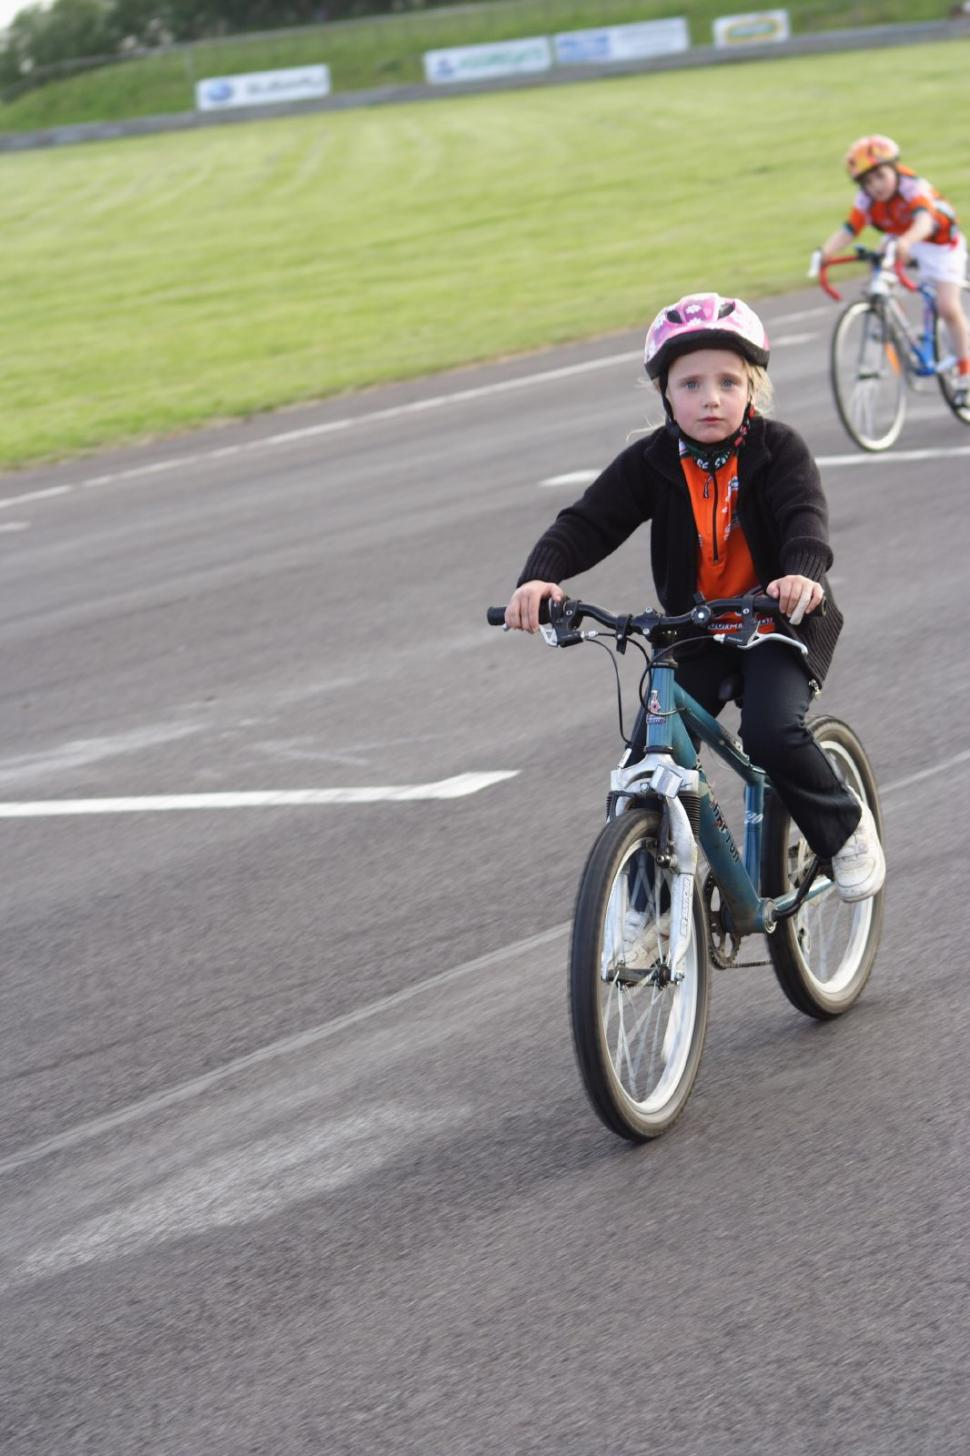 Kids on bikes (©Dave Atkinson) 03